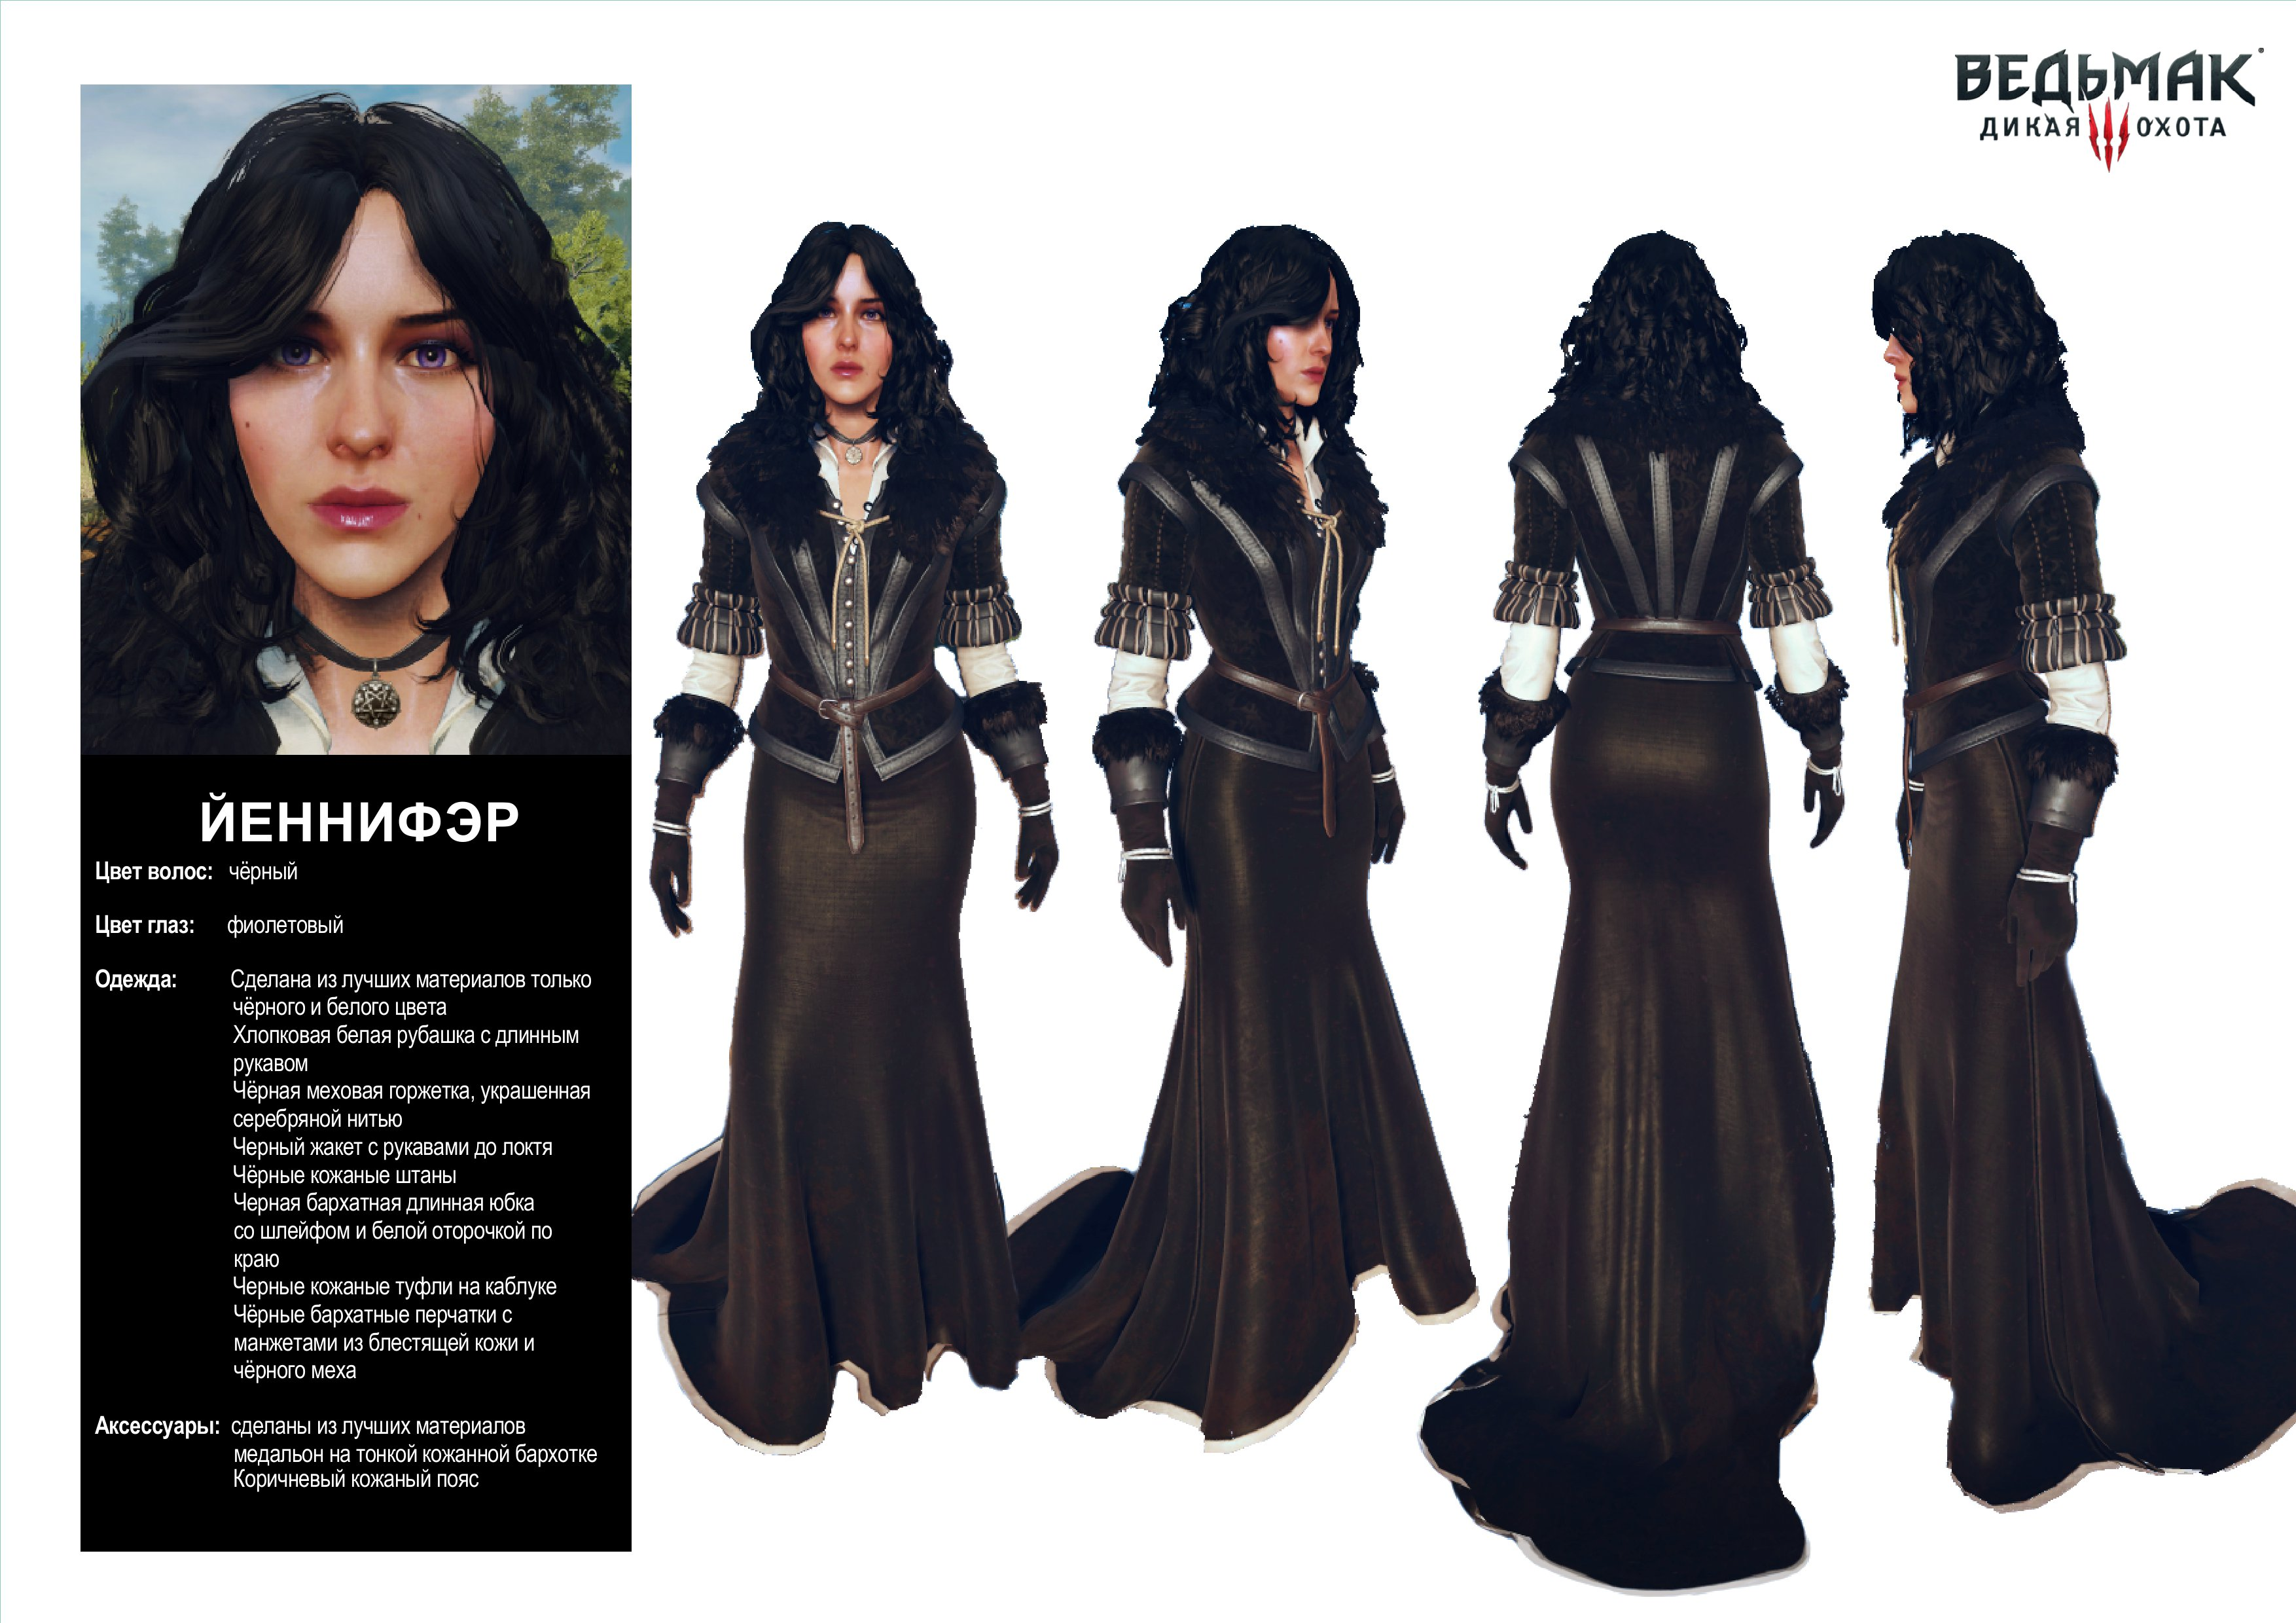 Yennefer_cosplay_guide02-00.jpg